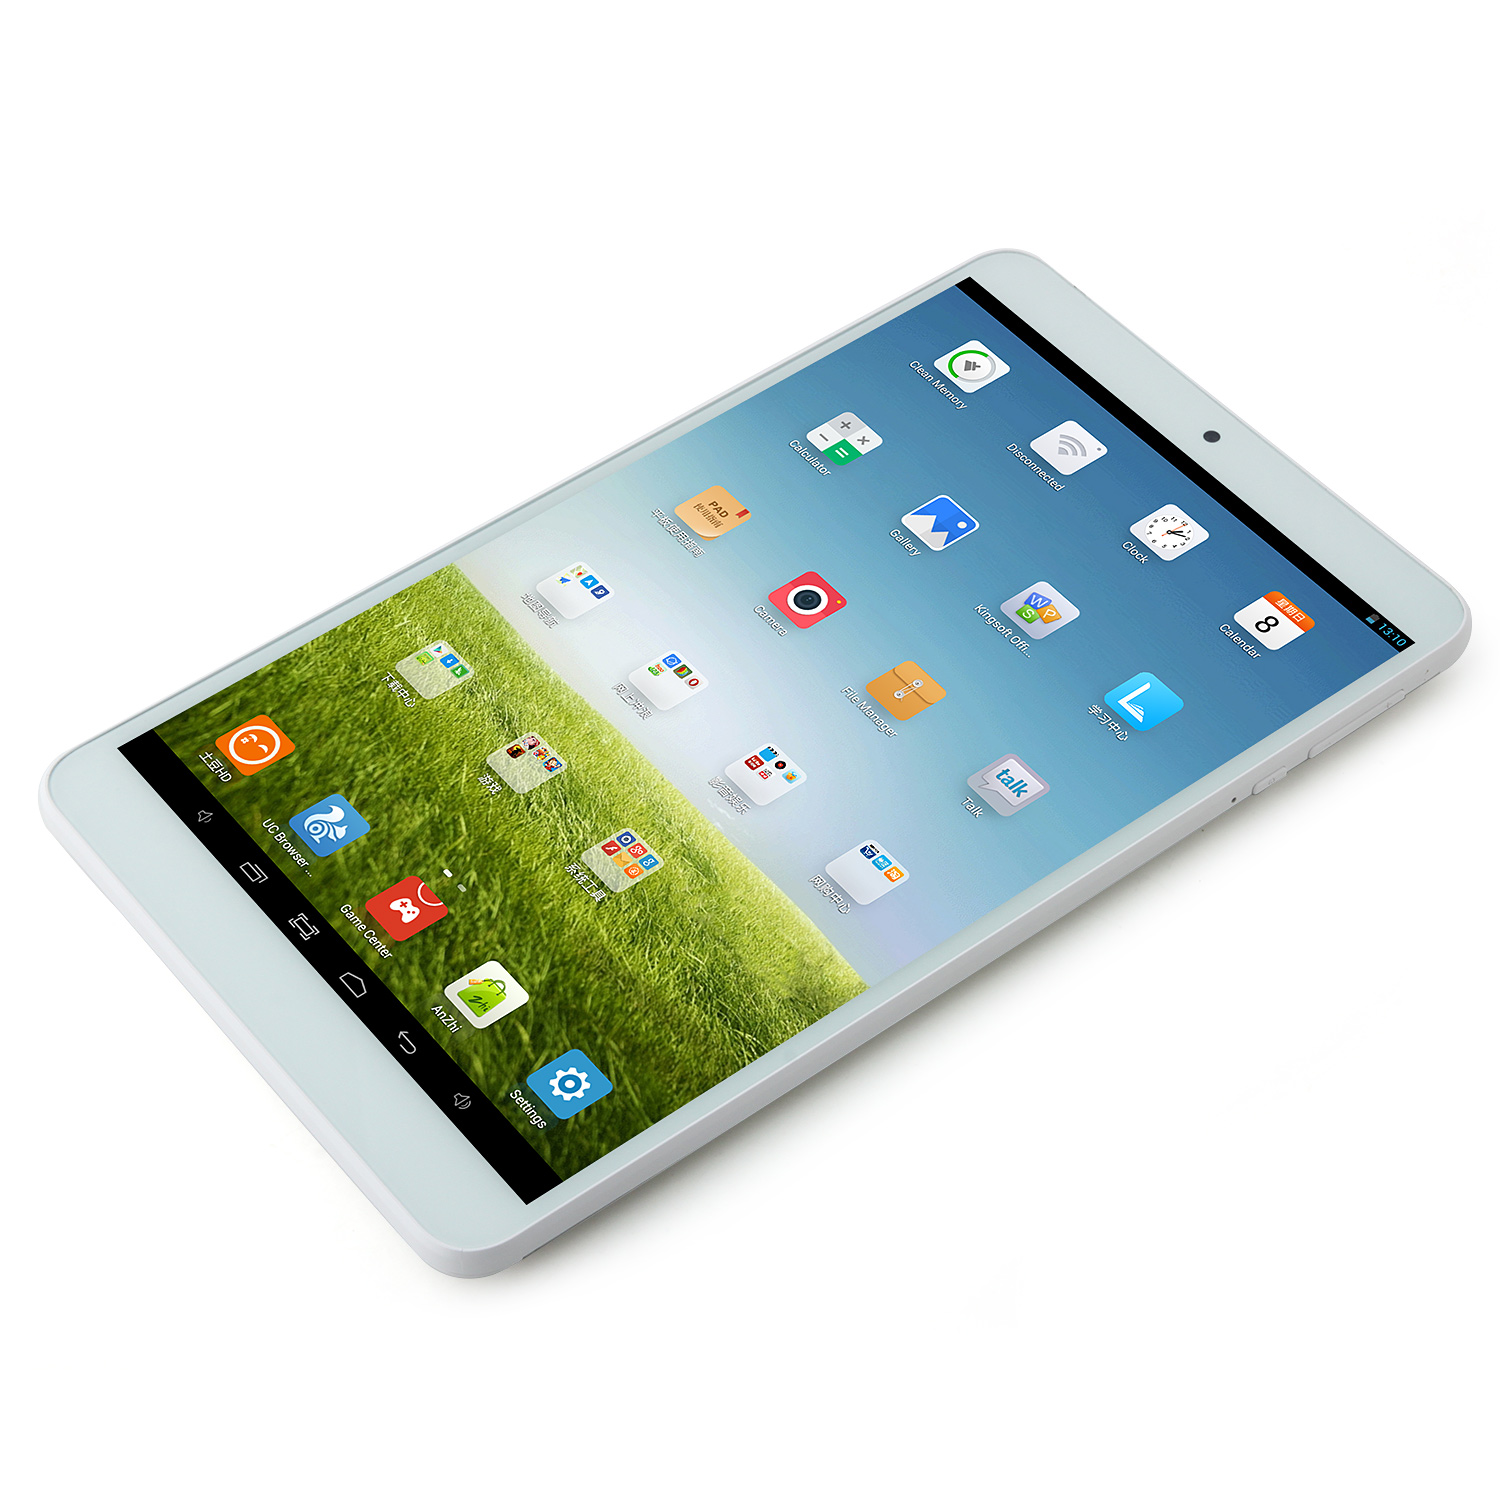 ONDA V820 Tablet PC A31s Quad Core 8.0 Inch Android 4.2 IPS Screen 16GB Silver